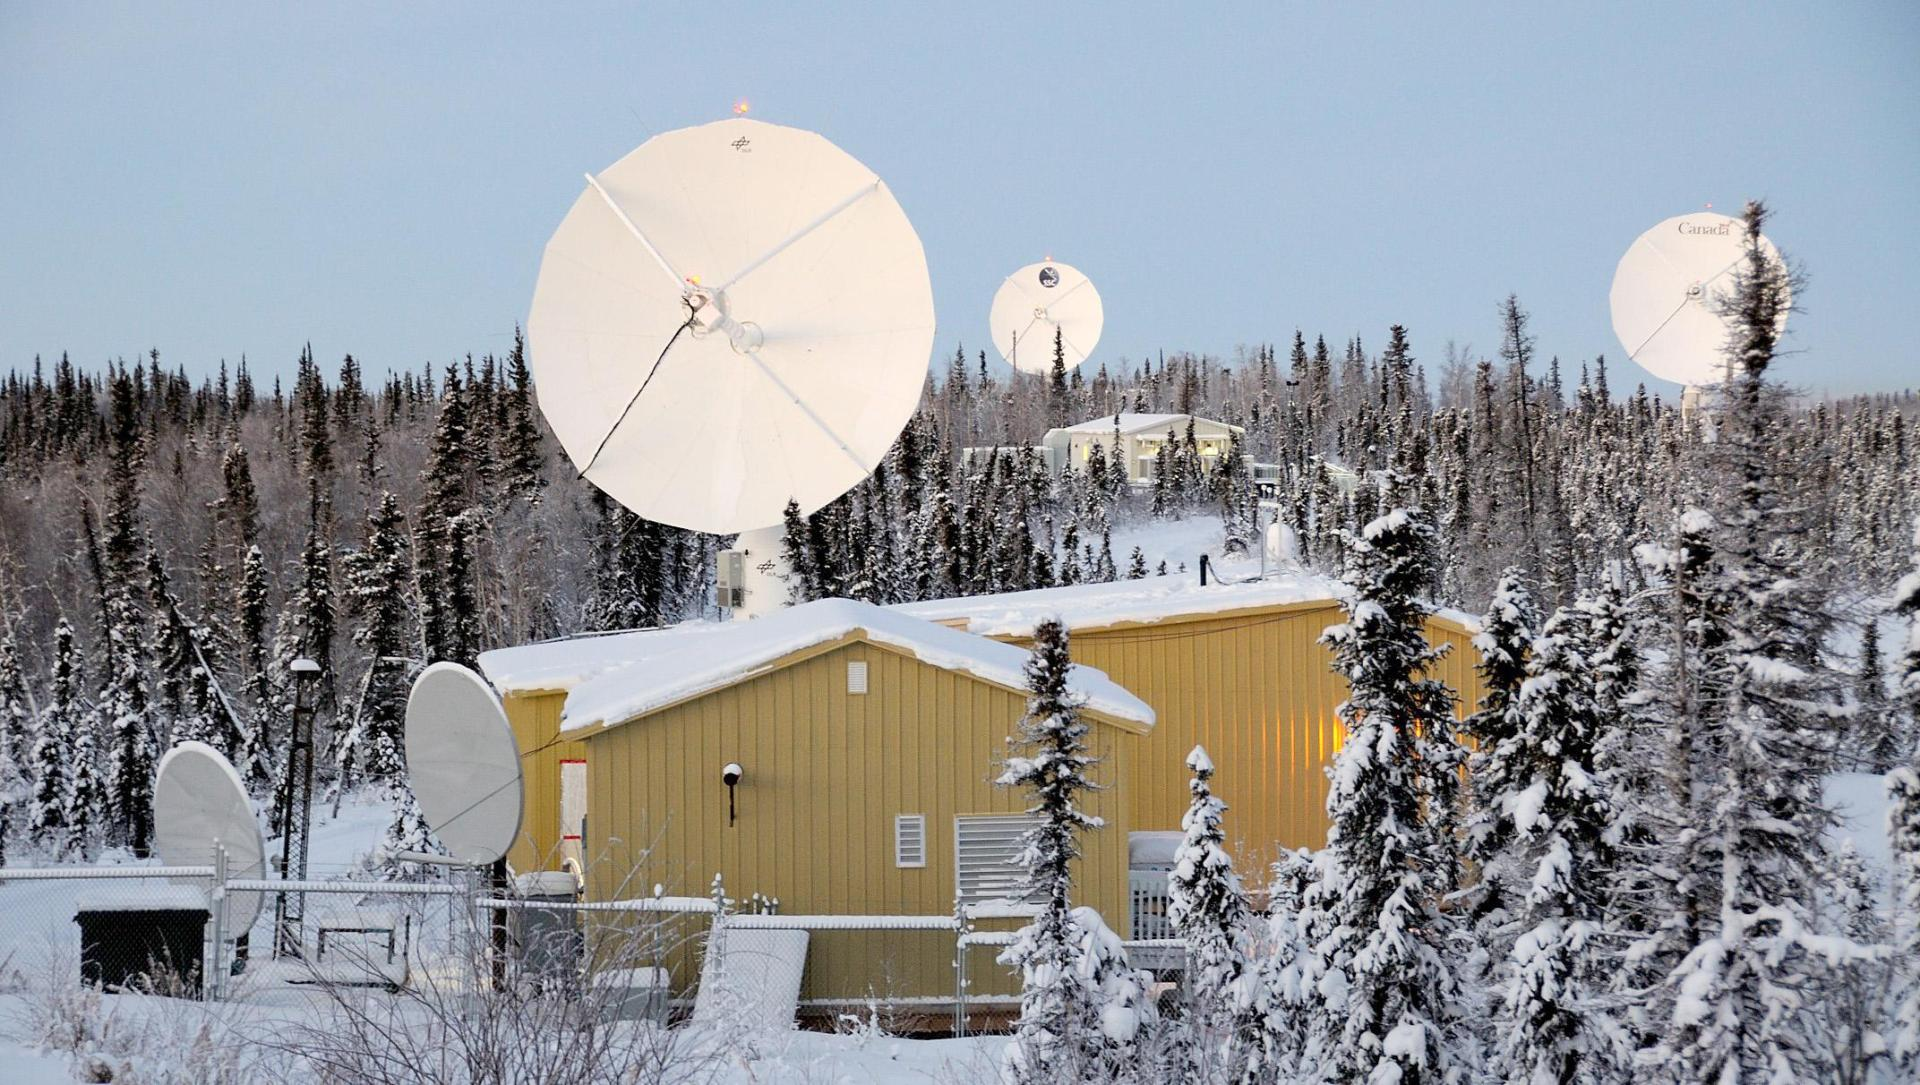 International Satellite Station Facility (ISSF) of the Earth Observation Center in Inuvik, Kanada